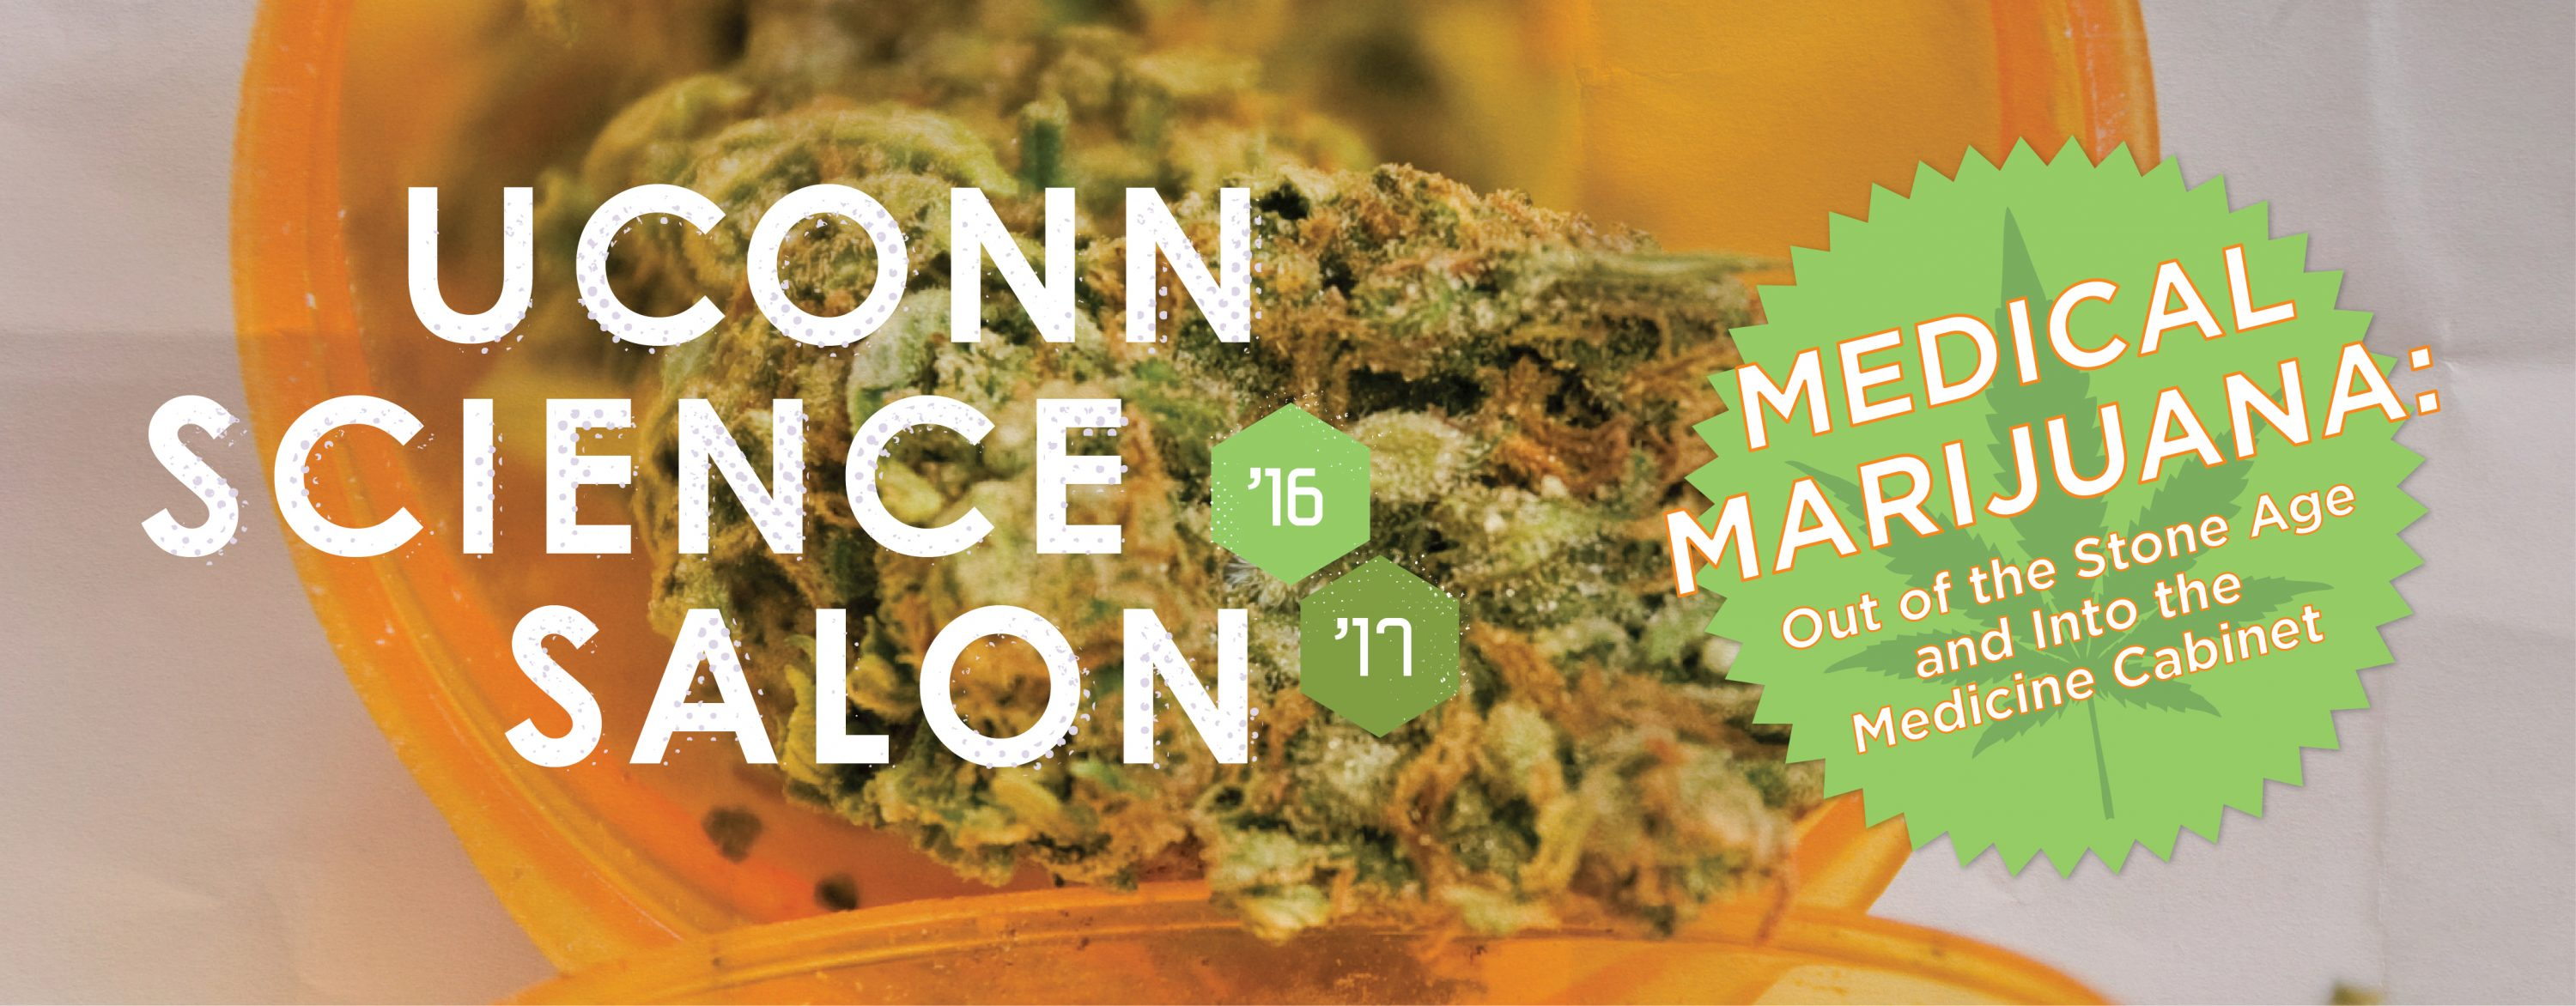 UConn Science Salon Medical Marijuana